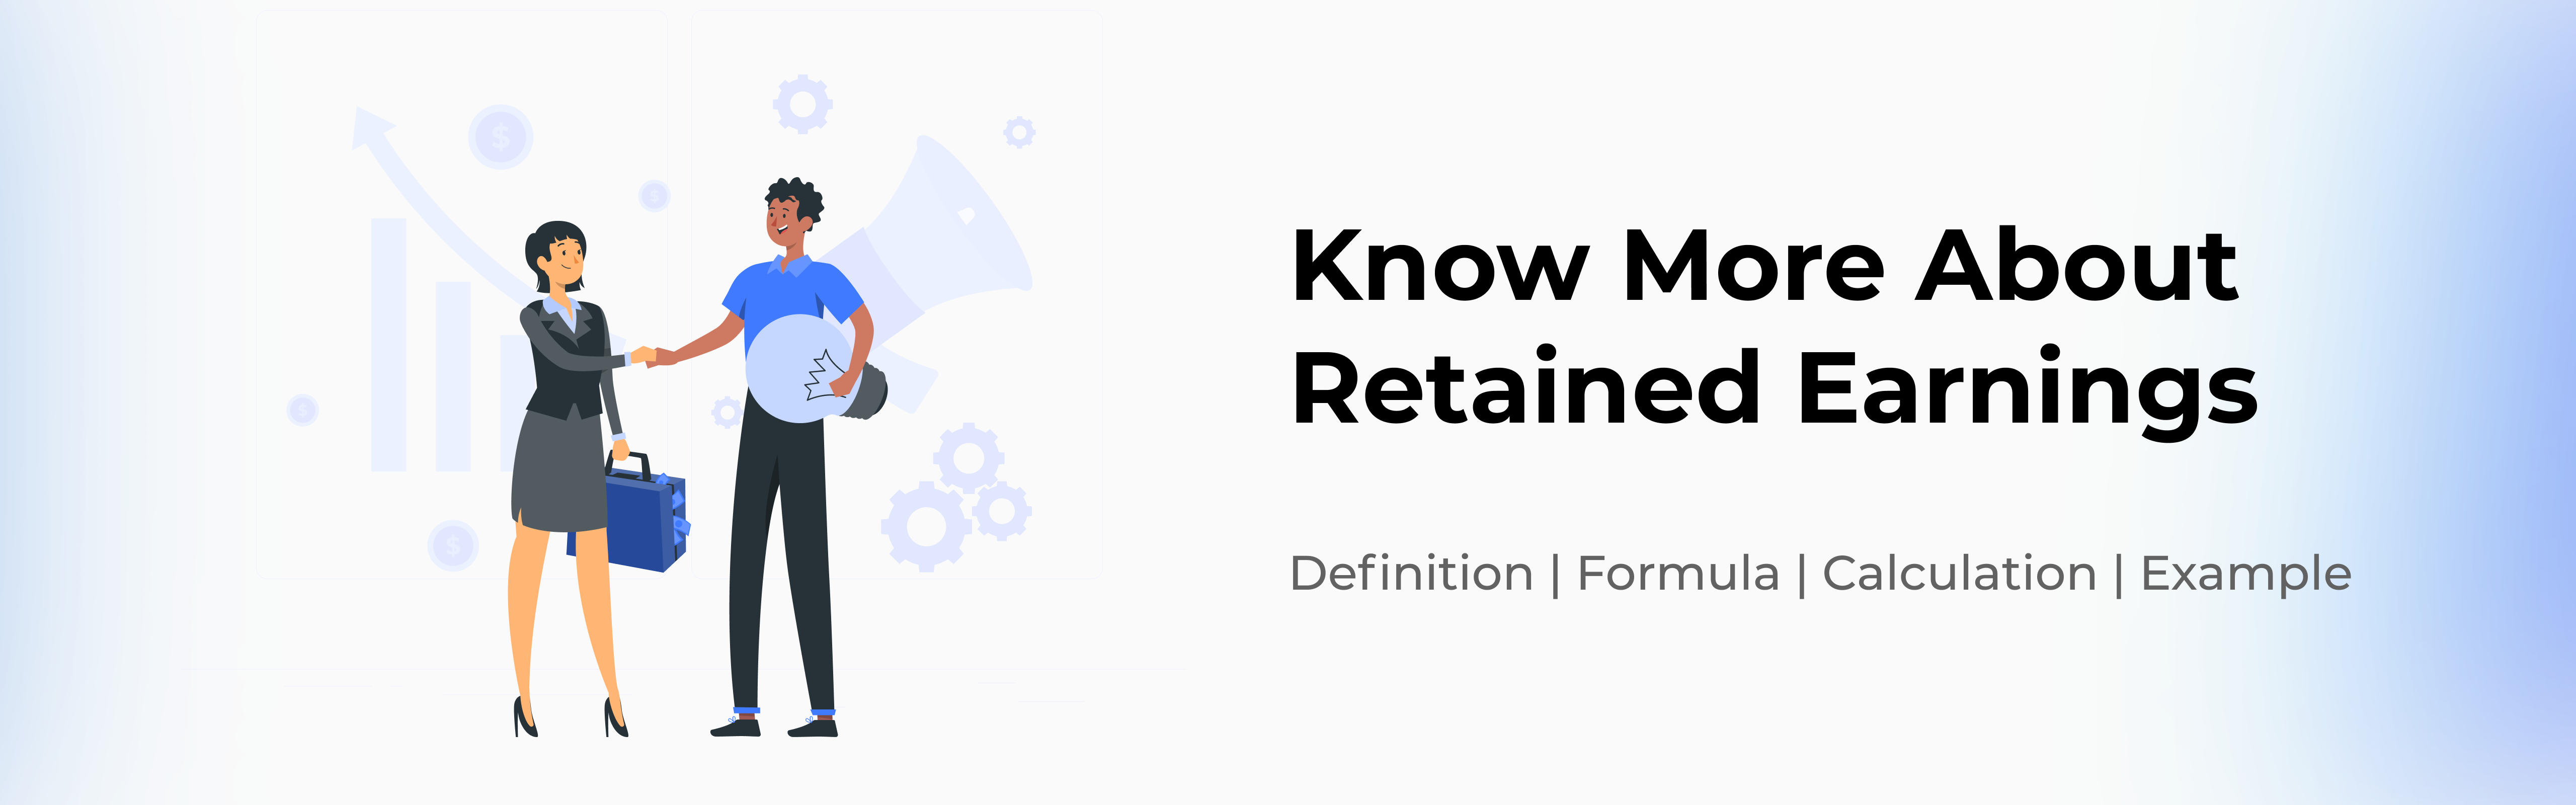 retained-earnings-definition-formula-calculation-example